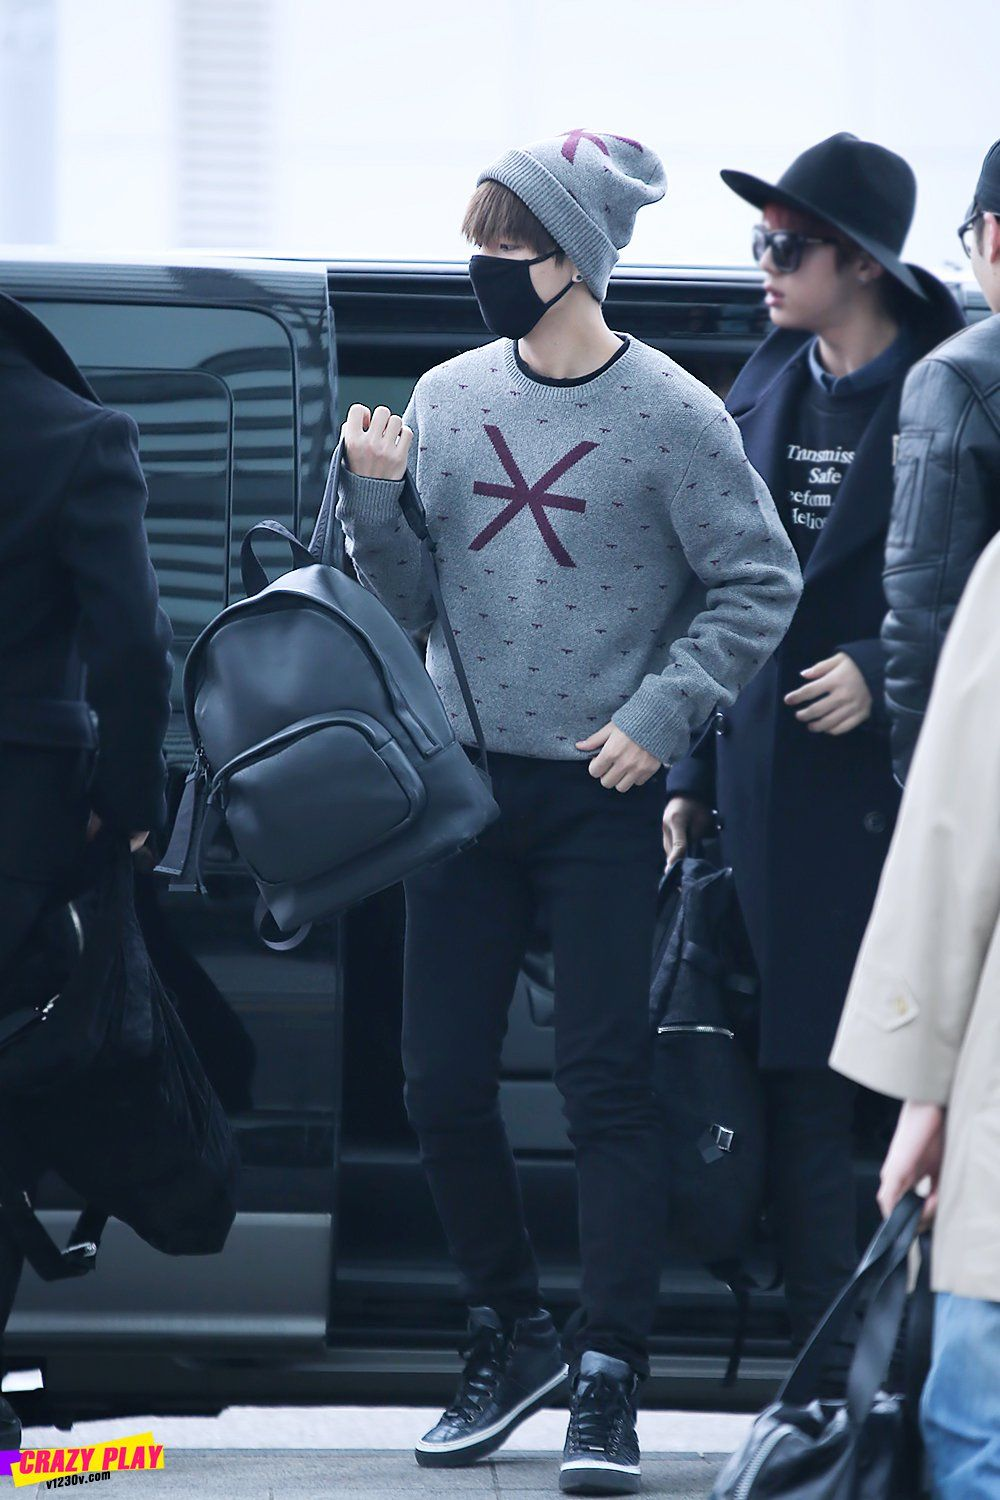 Bts Airport Fashion 2015 Google Search Airport Style Korean Fashion Kim Taehyung